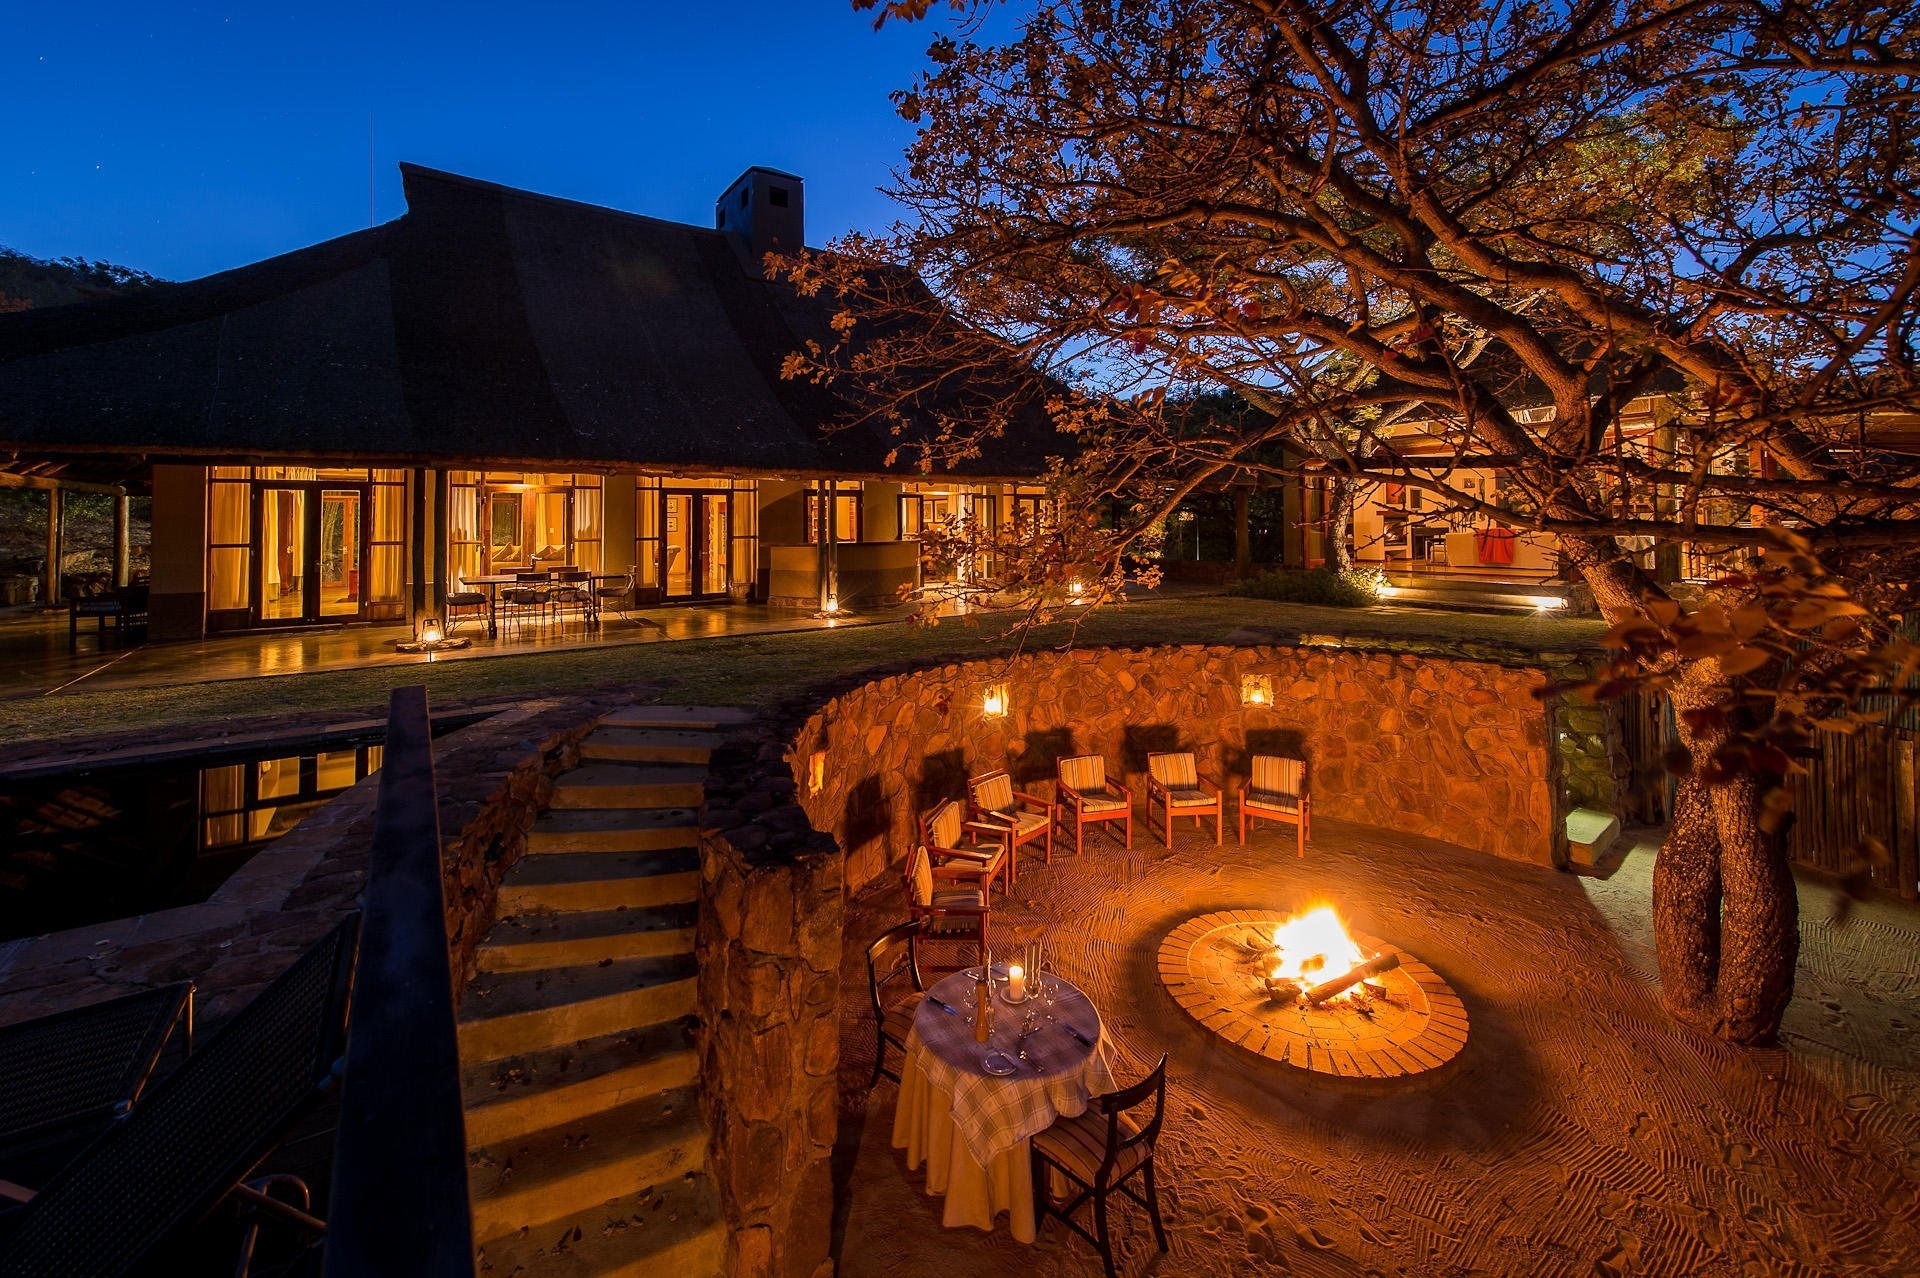 The beautiful Ekuthuleni Lodge in the malaria-free Welgevonden Priivate Game Reserve